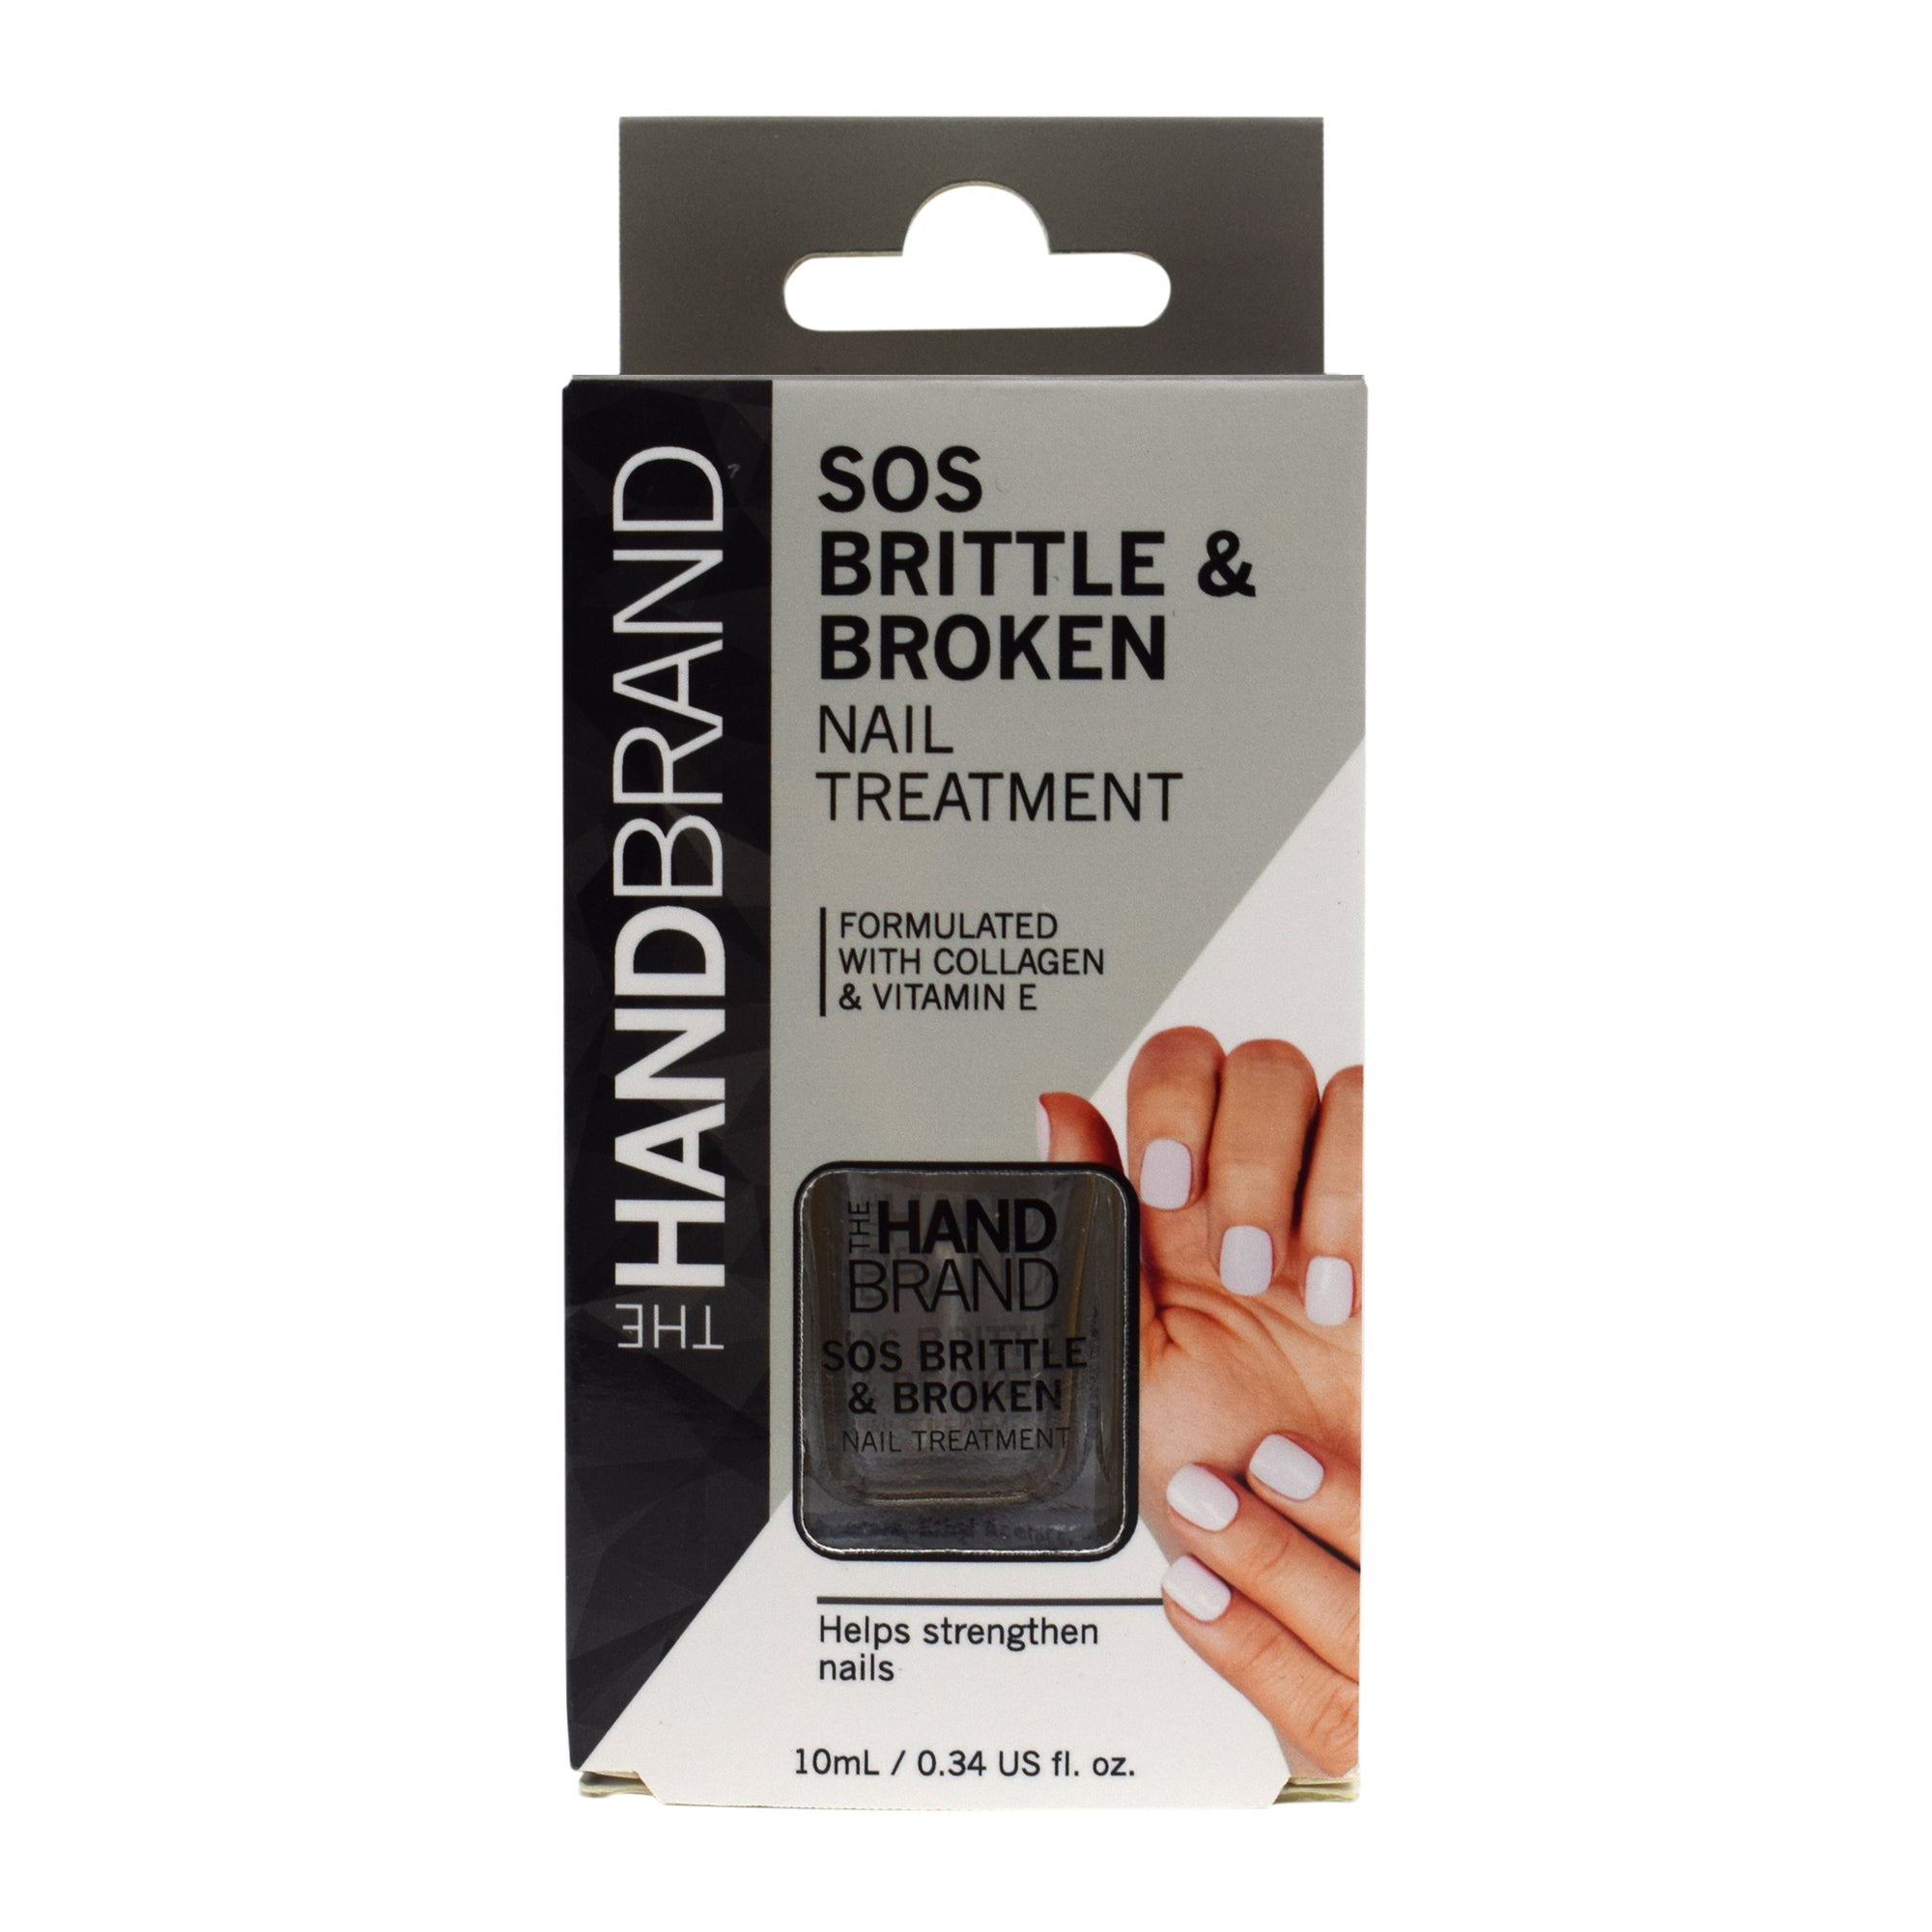 The Hand Brand Nail Treatment - SOS Brittle & Broken